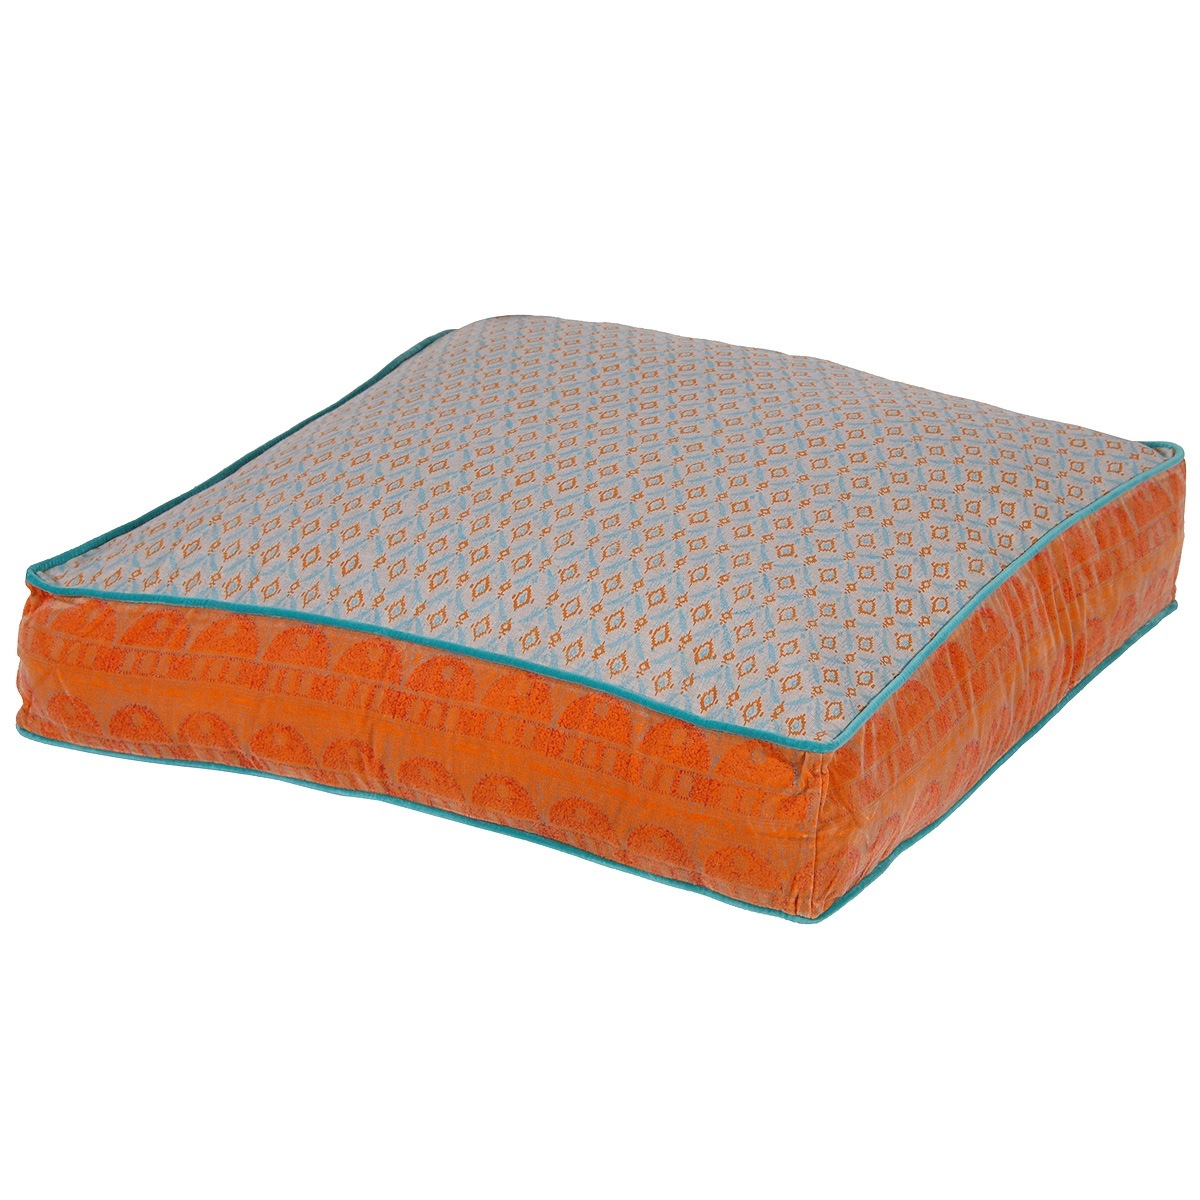 Large Festival Floor Cushion in Orange French Bedroom Company